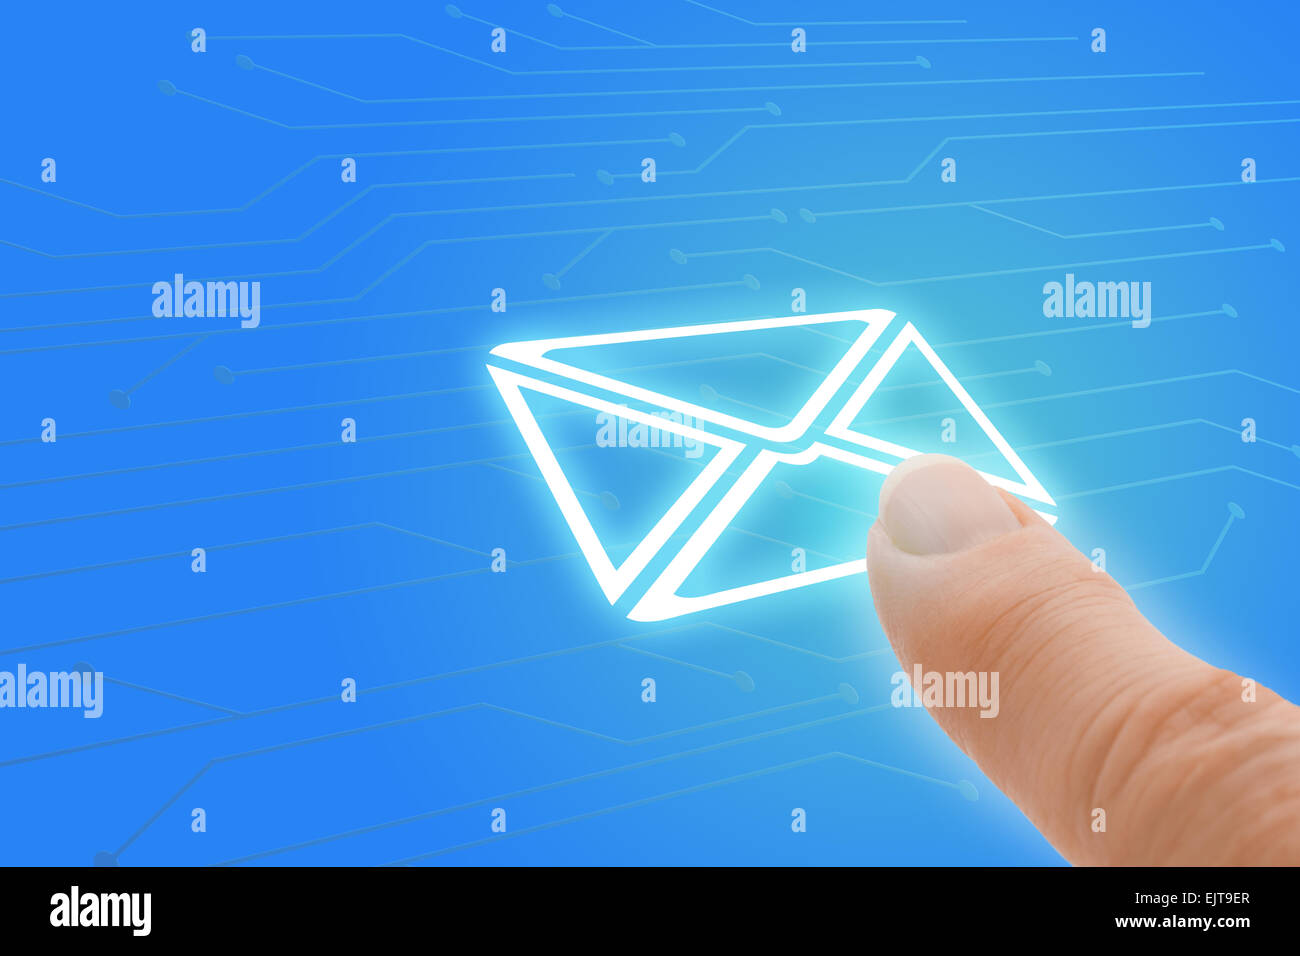 Email Touch Screen Finger Pointing to Envelope Icon - Stock Image